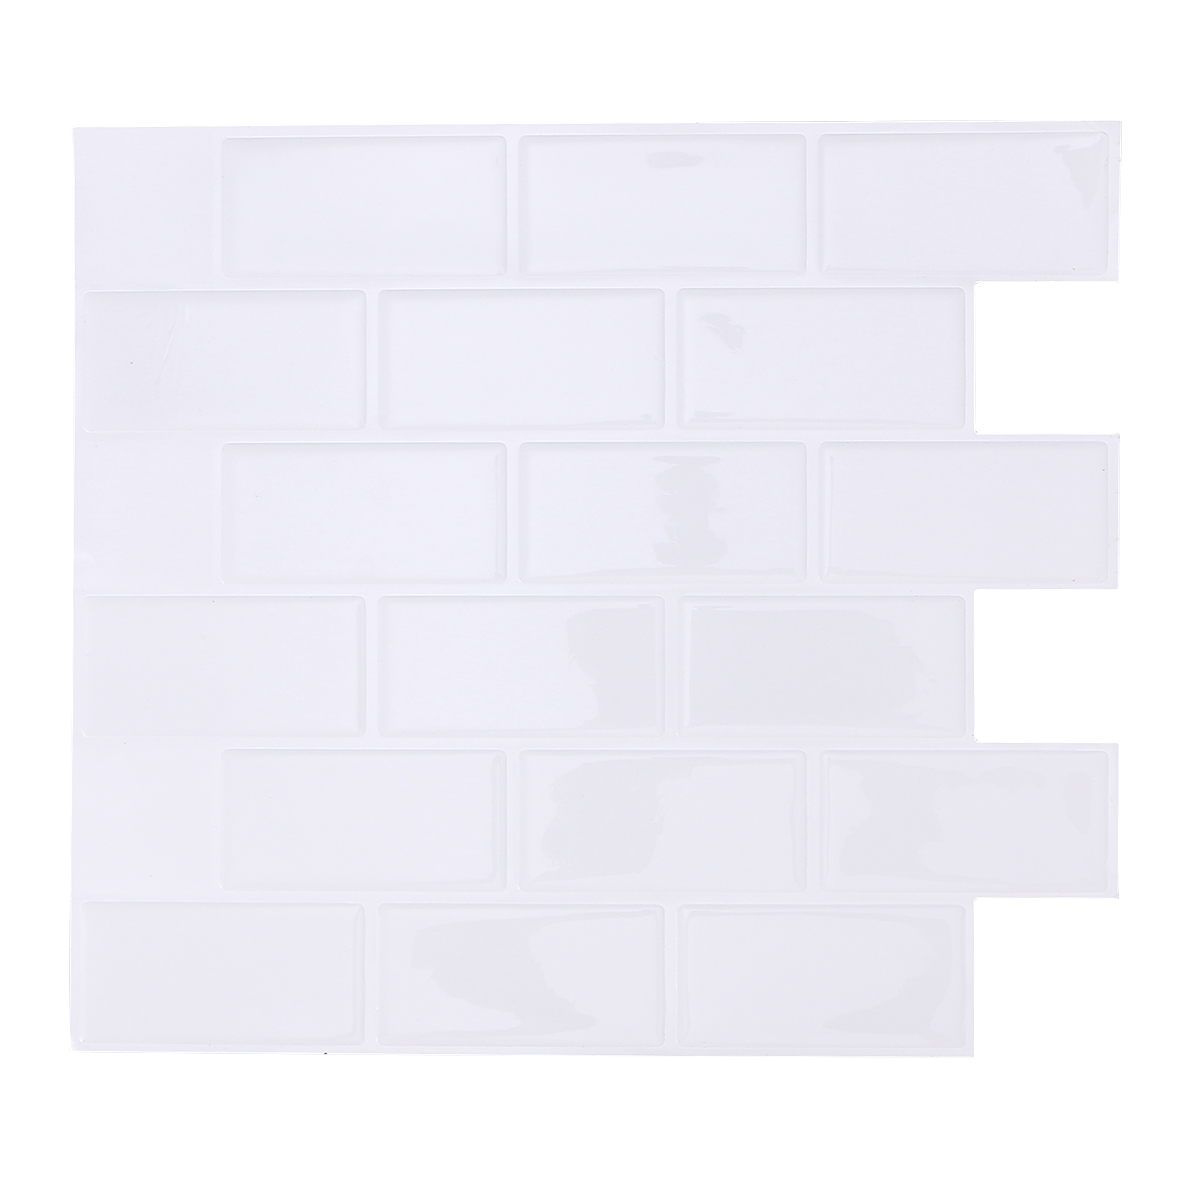 Self Adhesive Wall Tile Removable Waterproof Peel and Stick ...